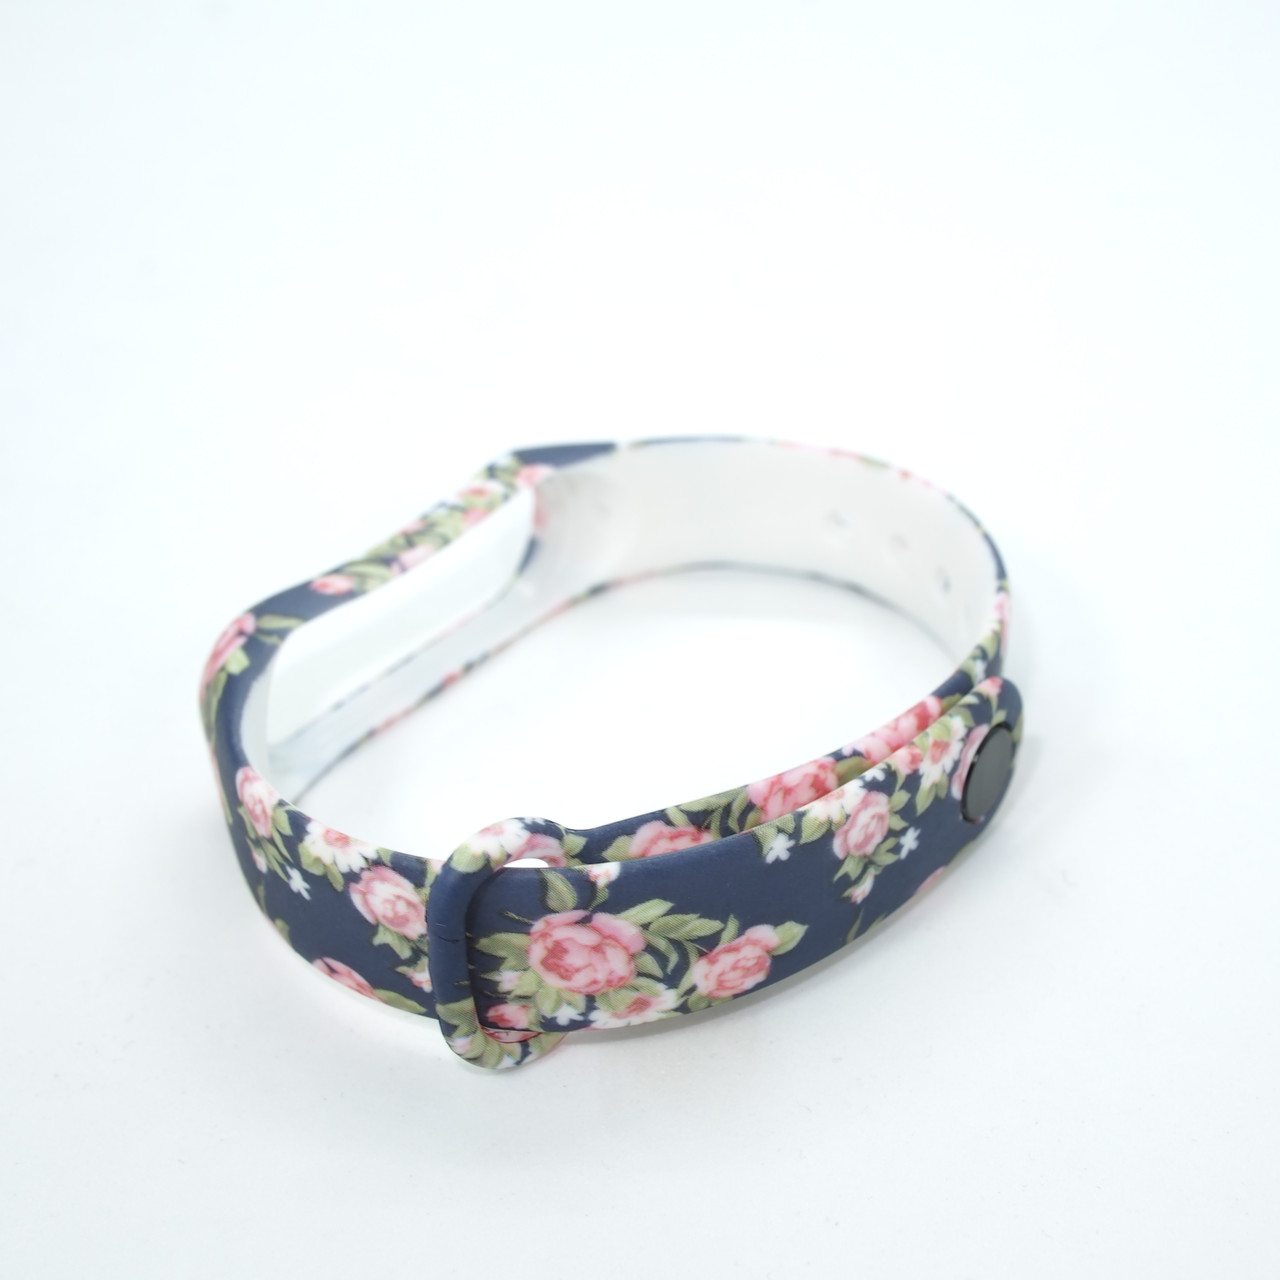 Xiaomi Mi Band 3 Picture flowers